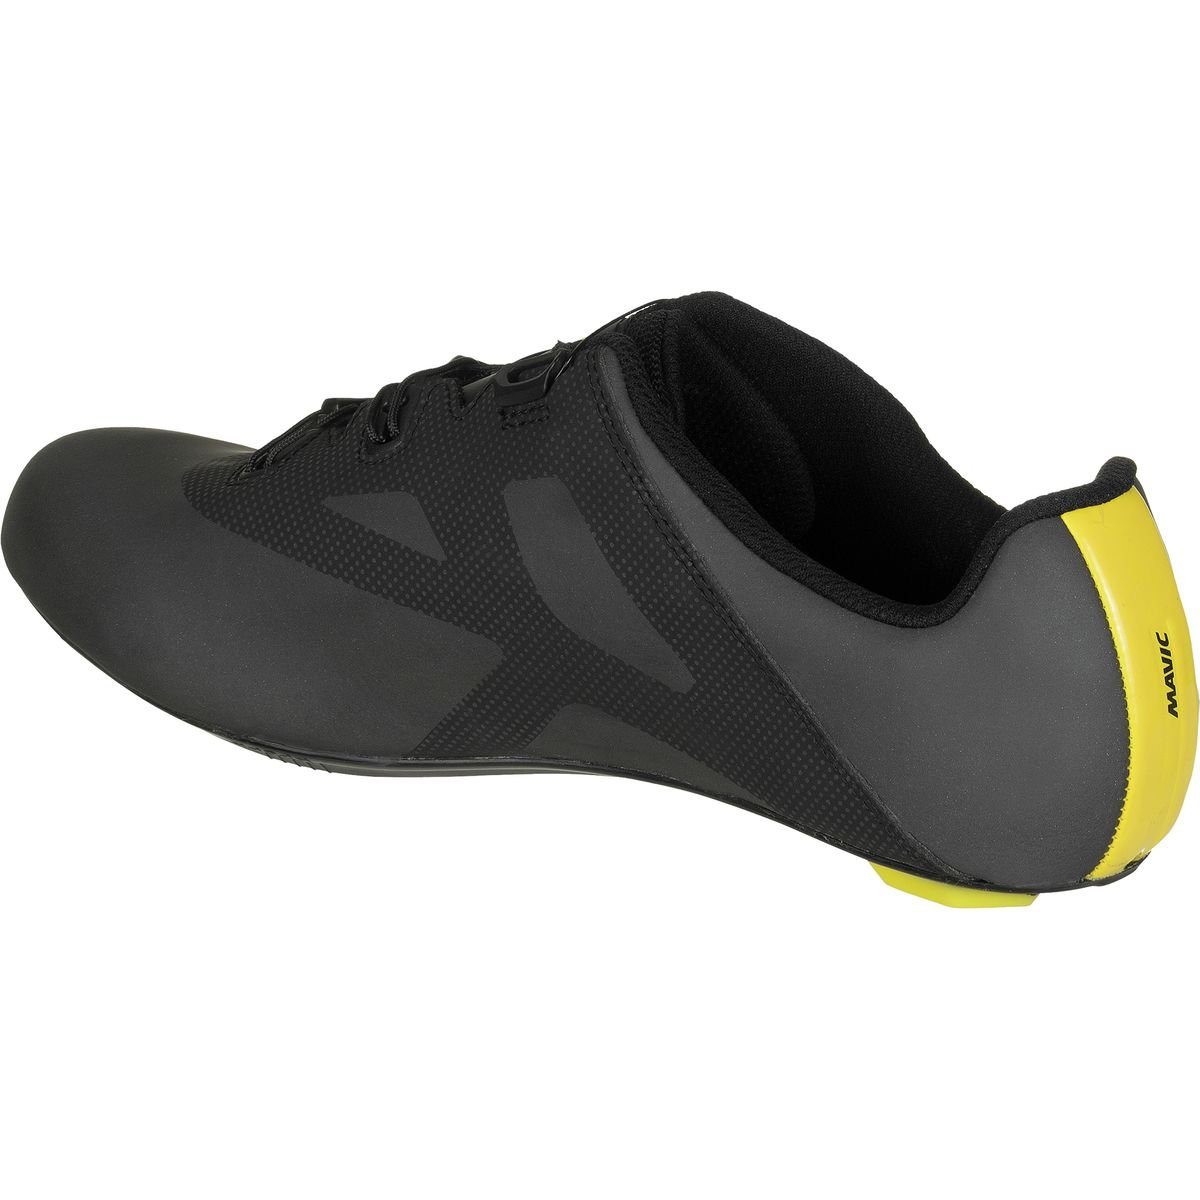 Mens Black//Yellow Mavic//Black Mavic Cosmic Elite Vision cm Cycling Shoe US 12.0//UK 11.5